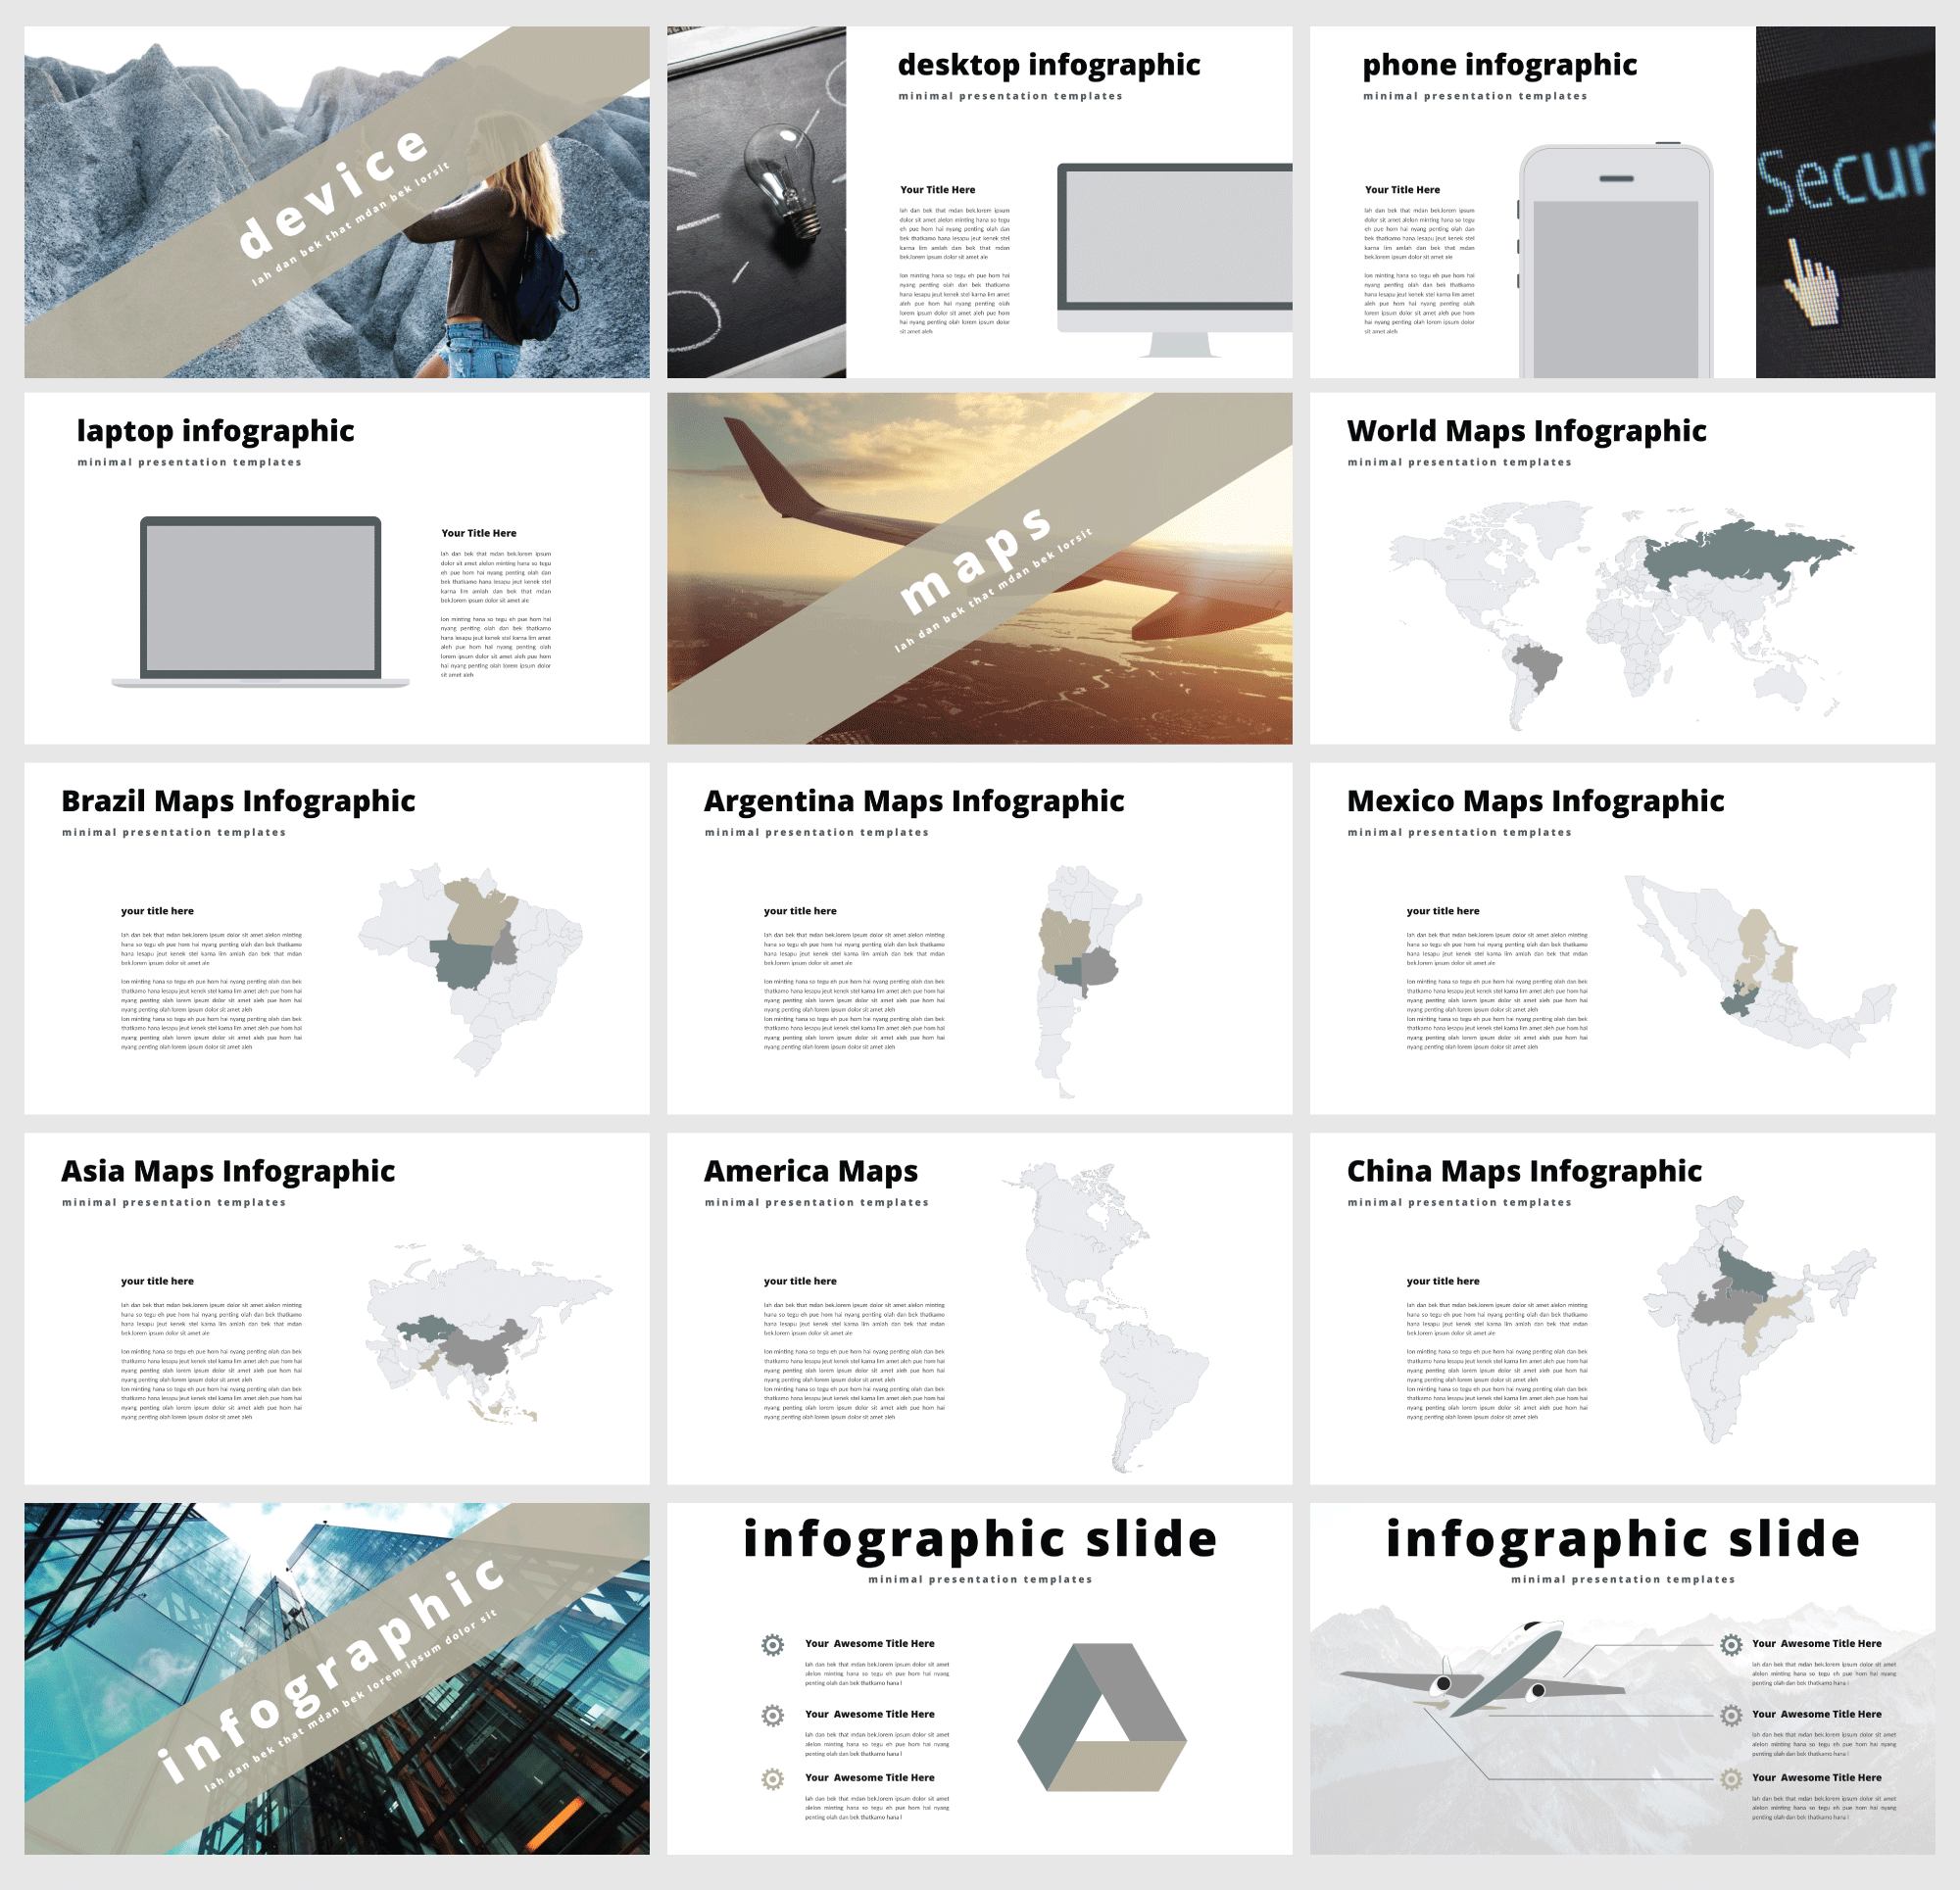 Free multi powerpoint template blog has been present at our place patherostudio presentation template which you can download it for free if you need a powerpoint template for making your toneelgroepblik Image collections